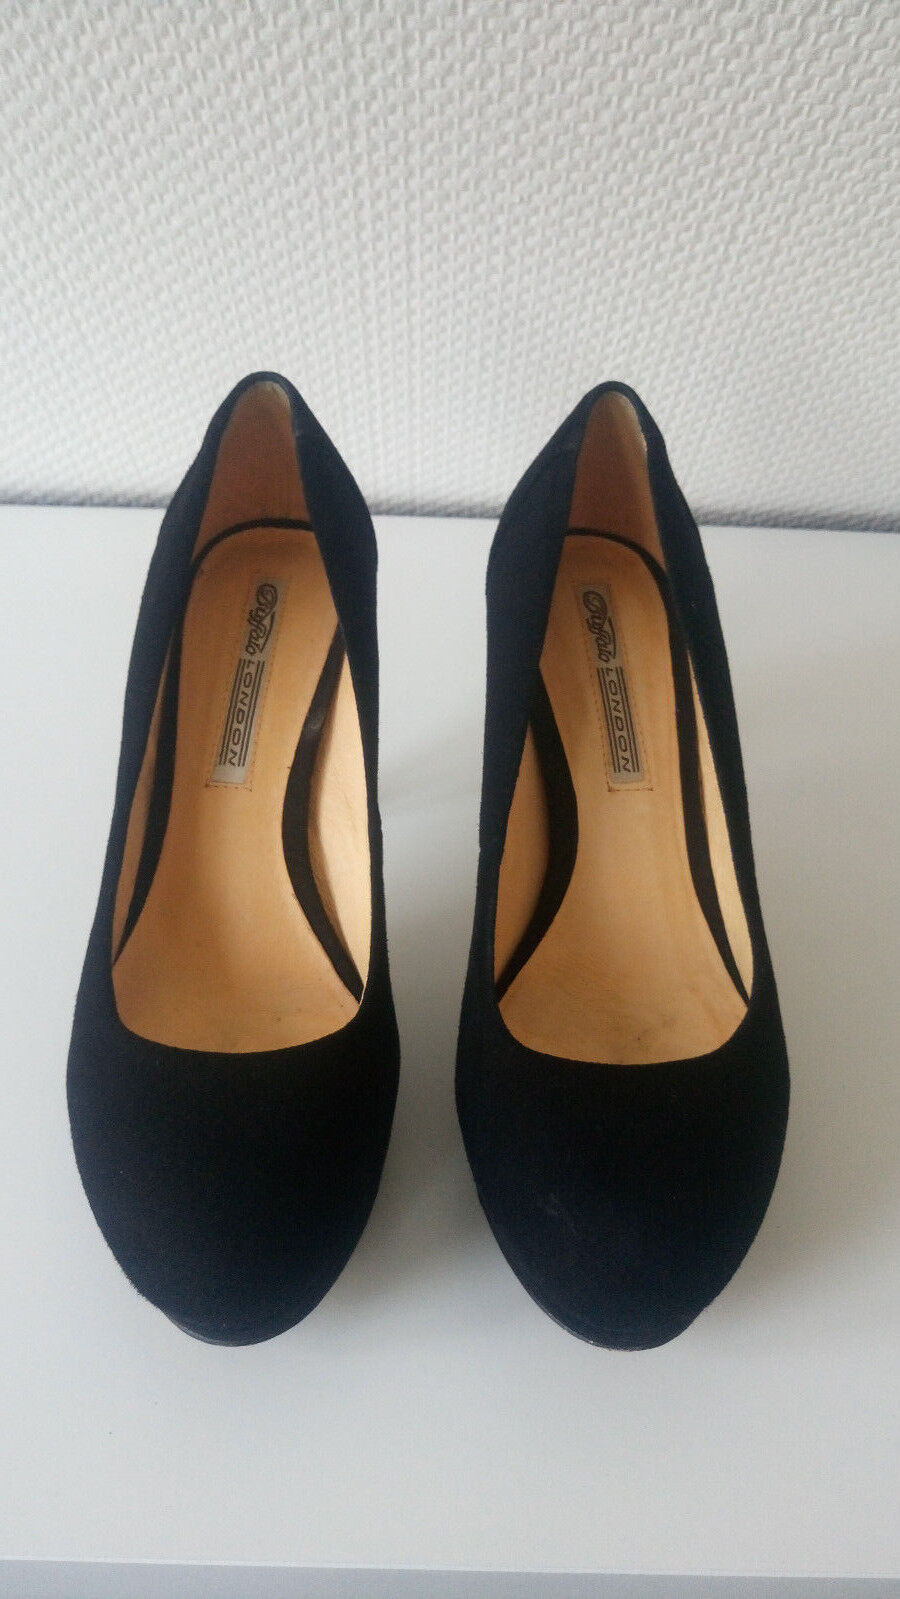 Echtleder Buffalo London Pumps Pumps London Gr. 39 Plateau Wildleder Leder Party high heels 115baf